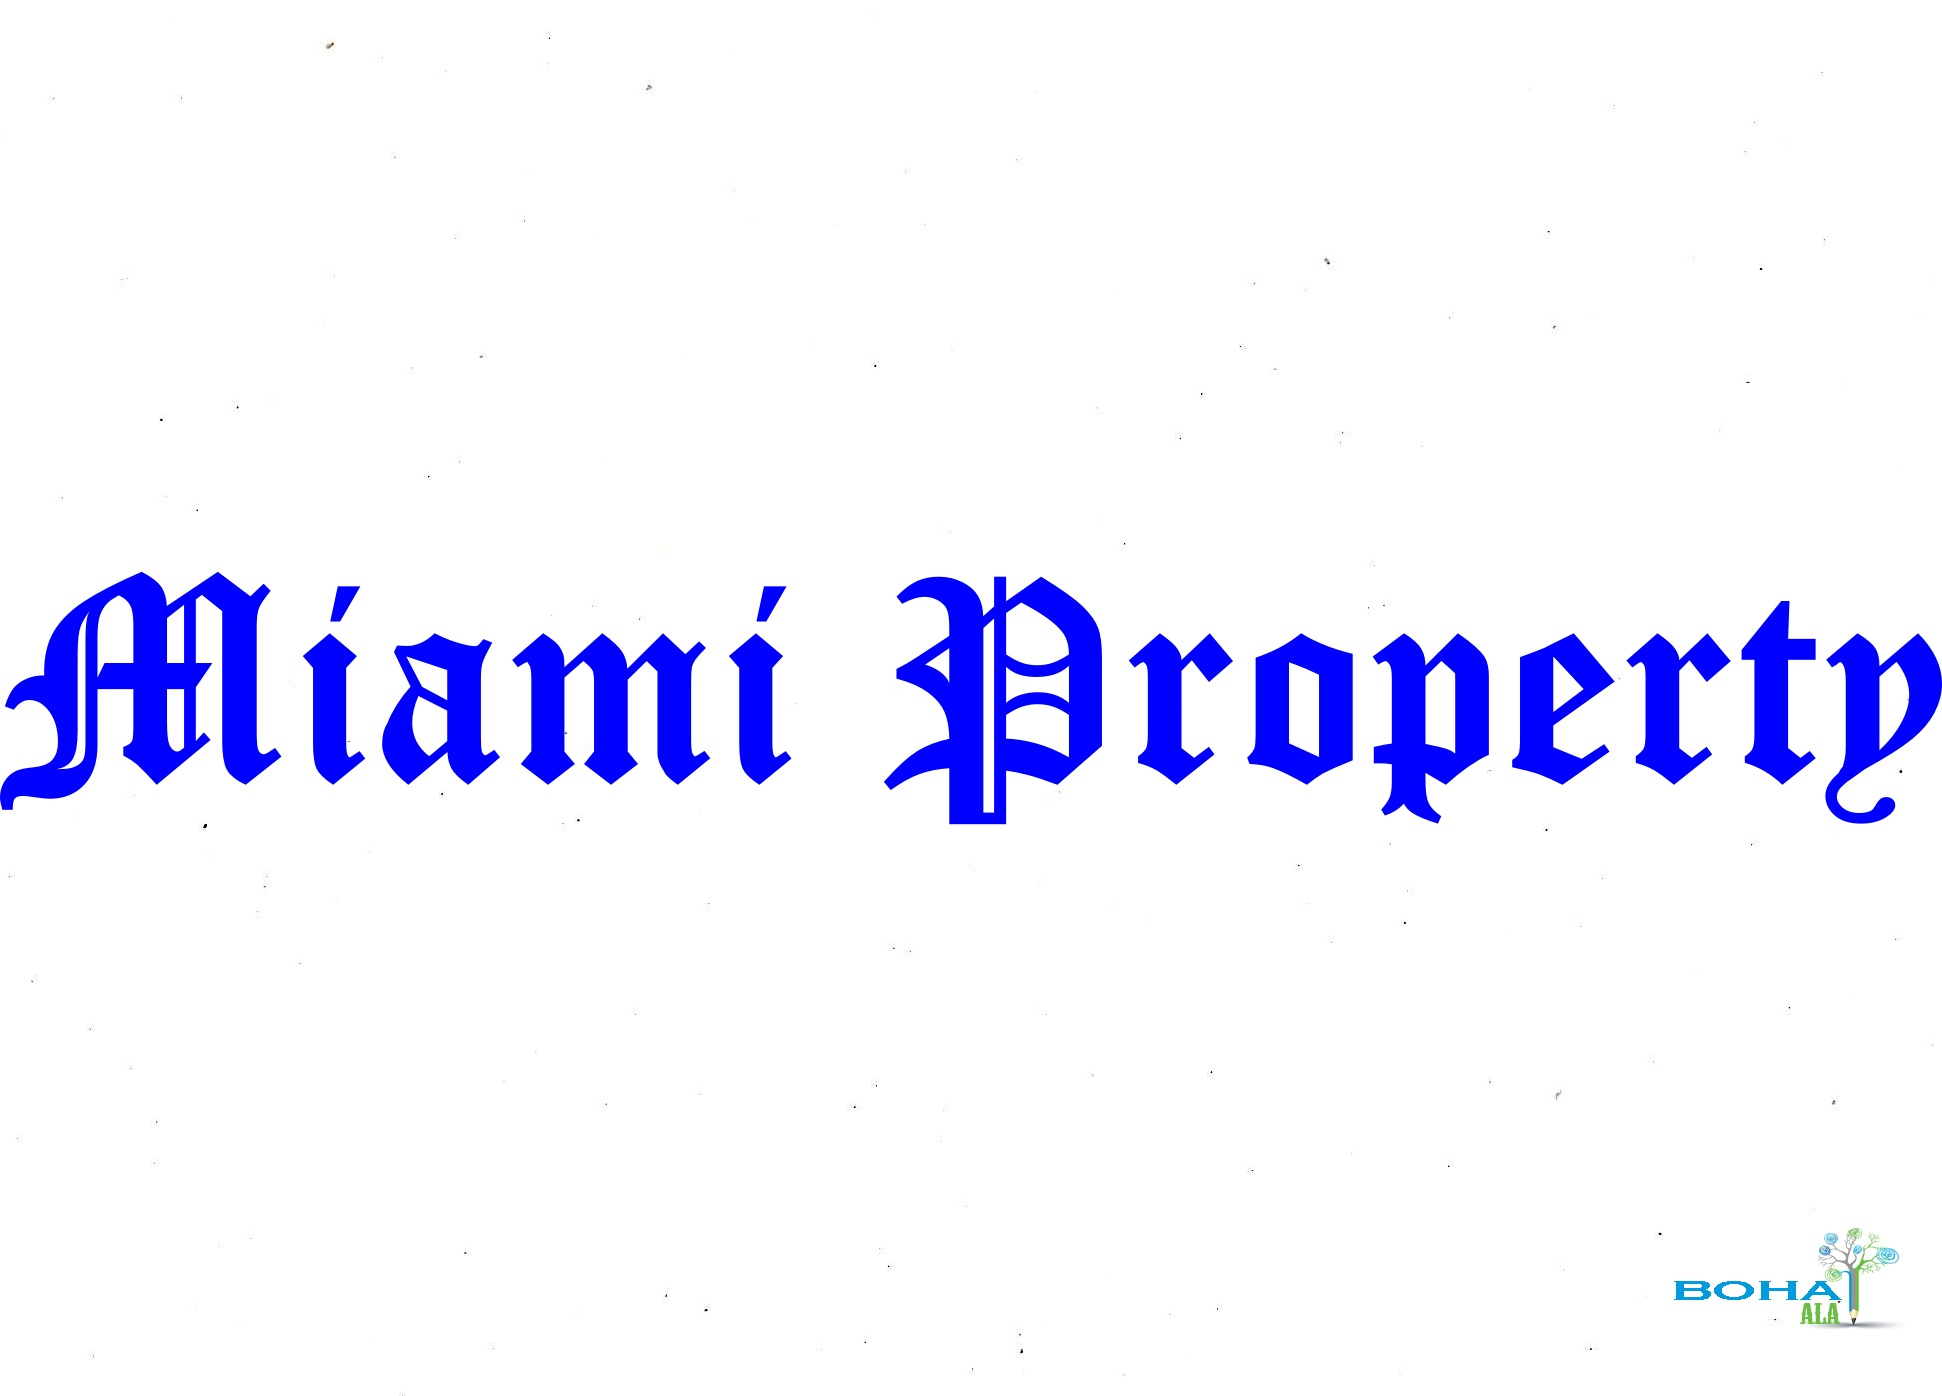 Investors Pay $150 Million for Miami Property